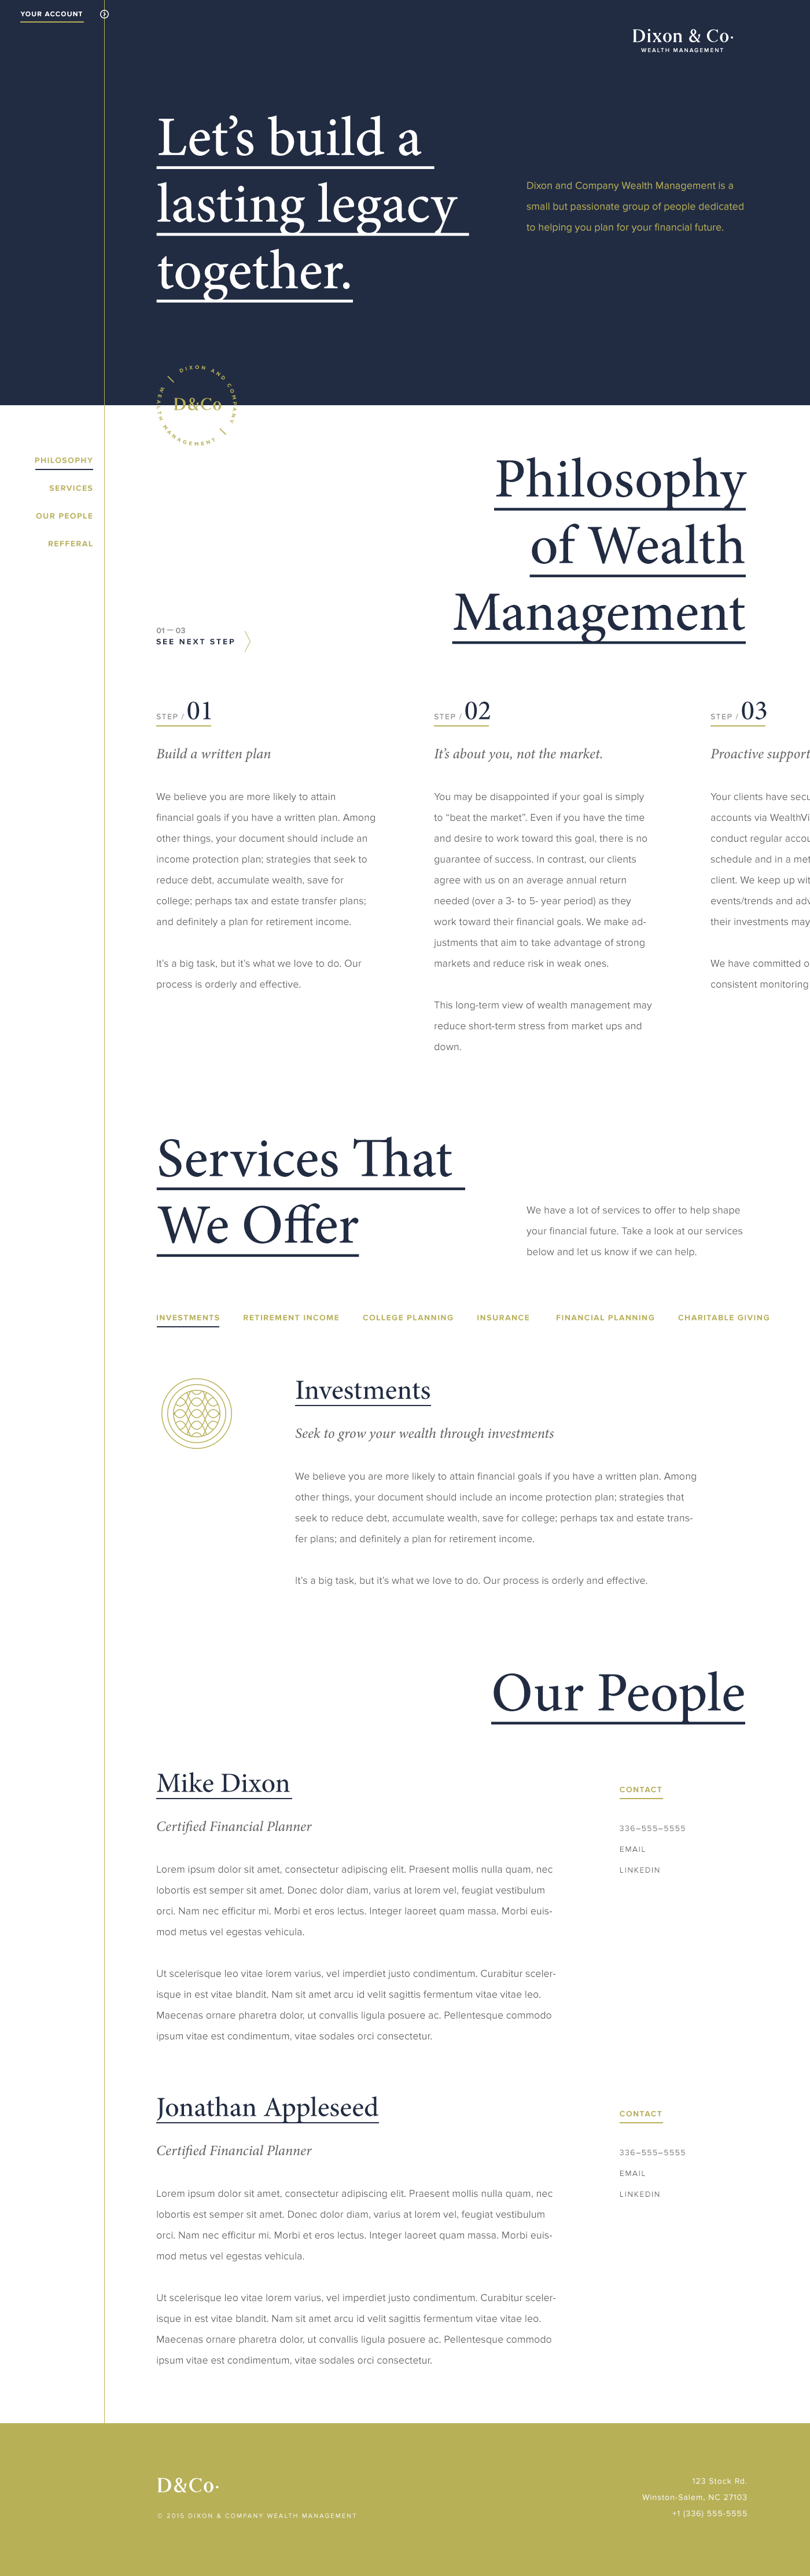 Dribbble - Dco_web.png by Adam Dixon